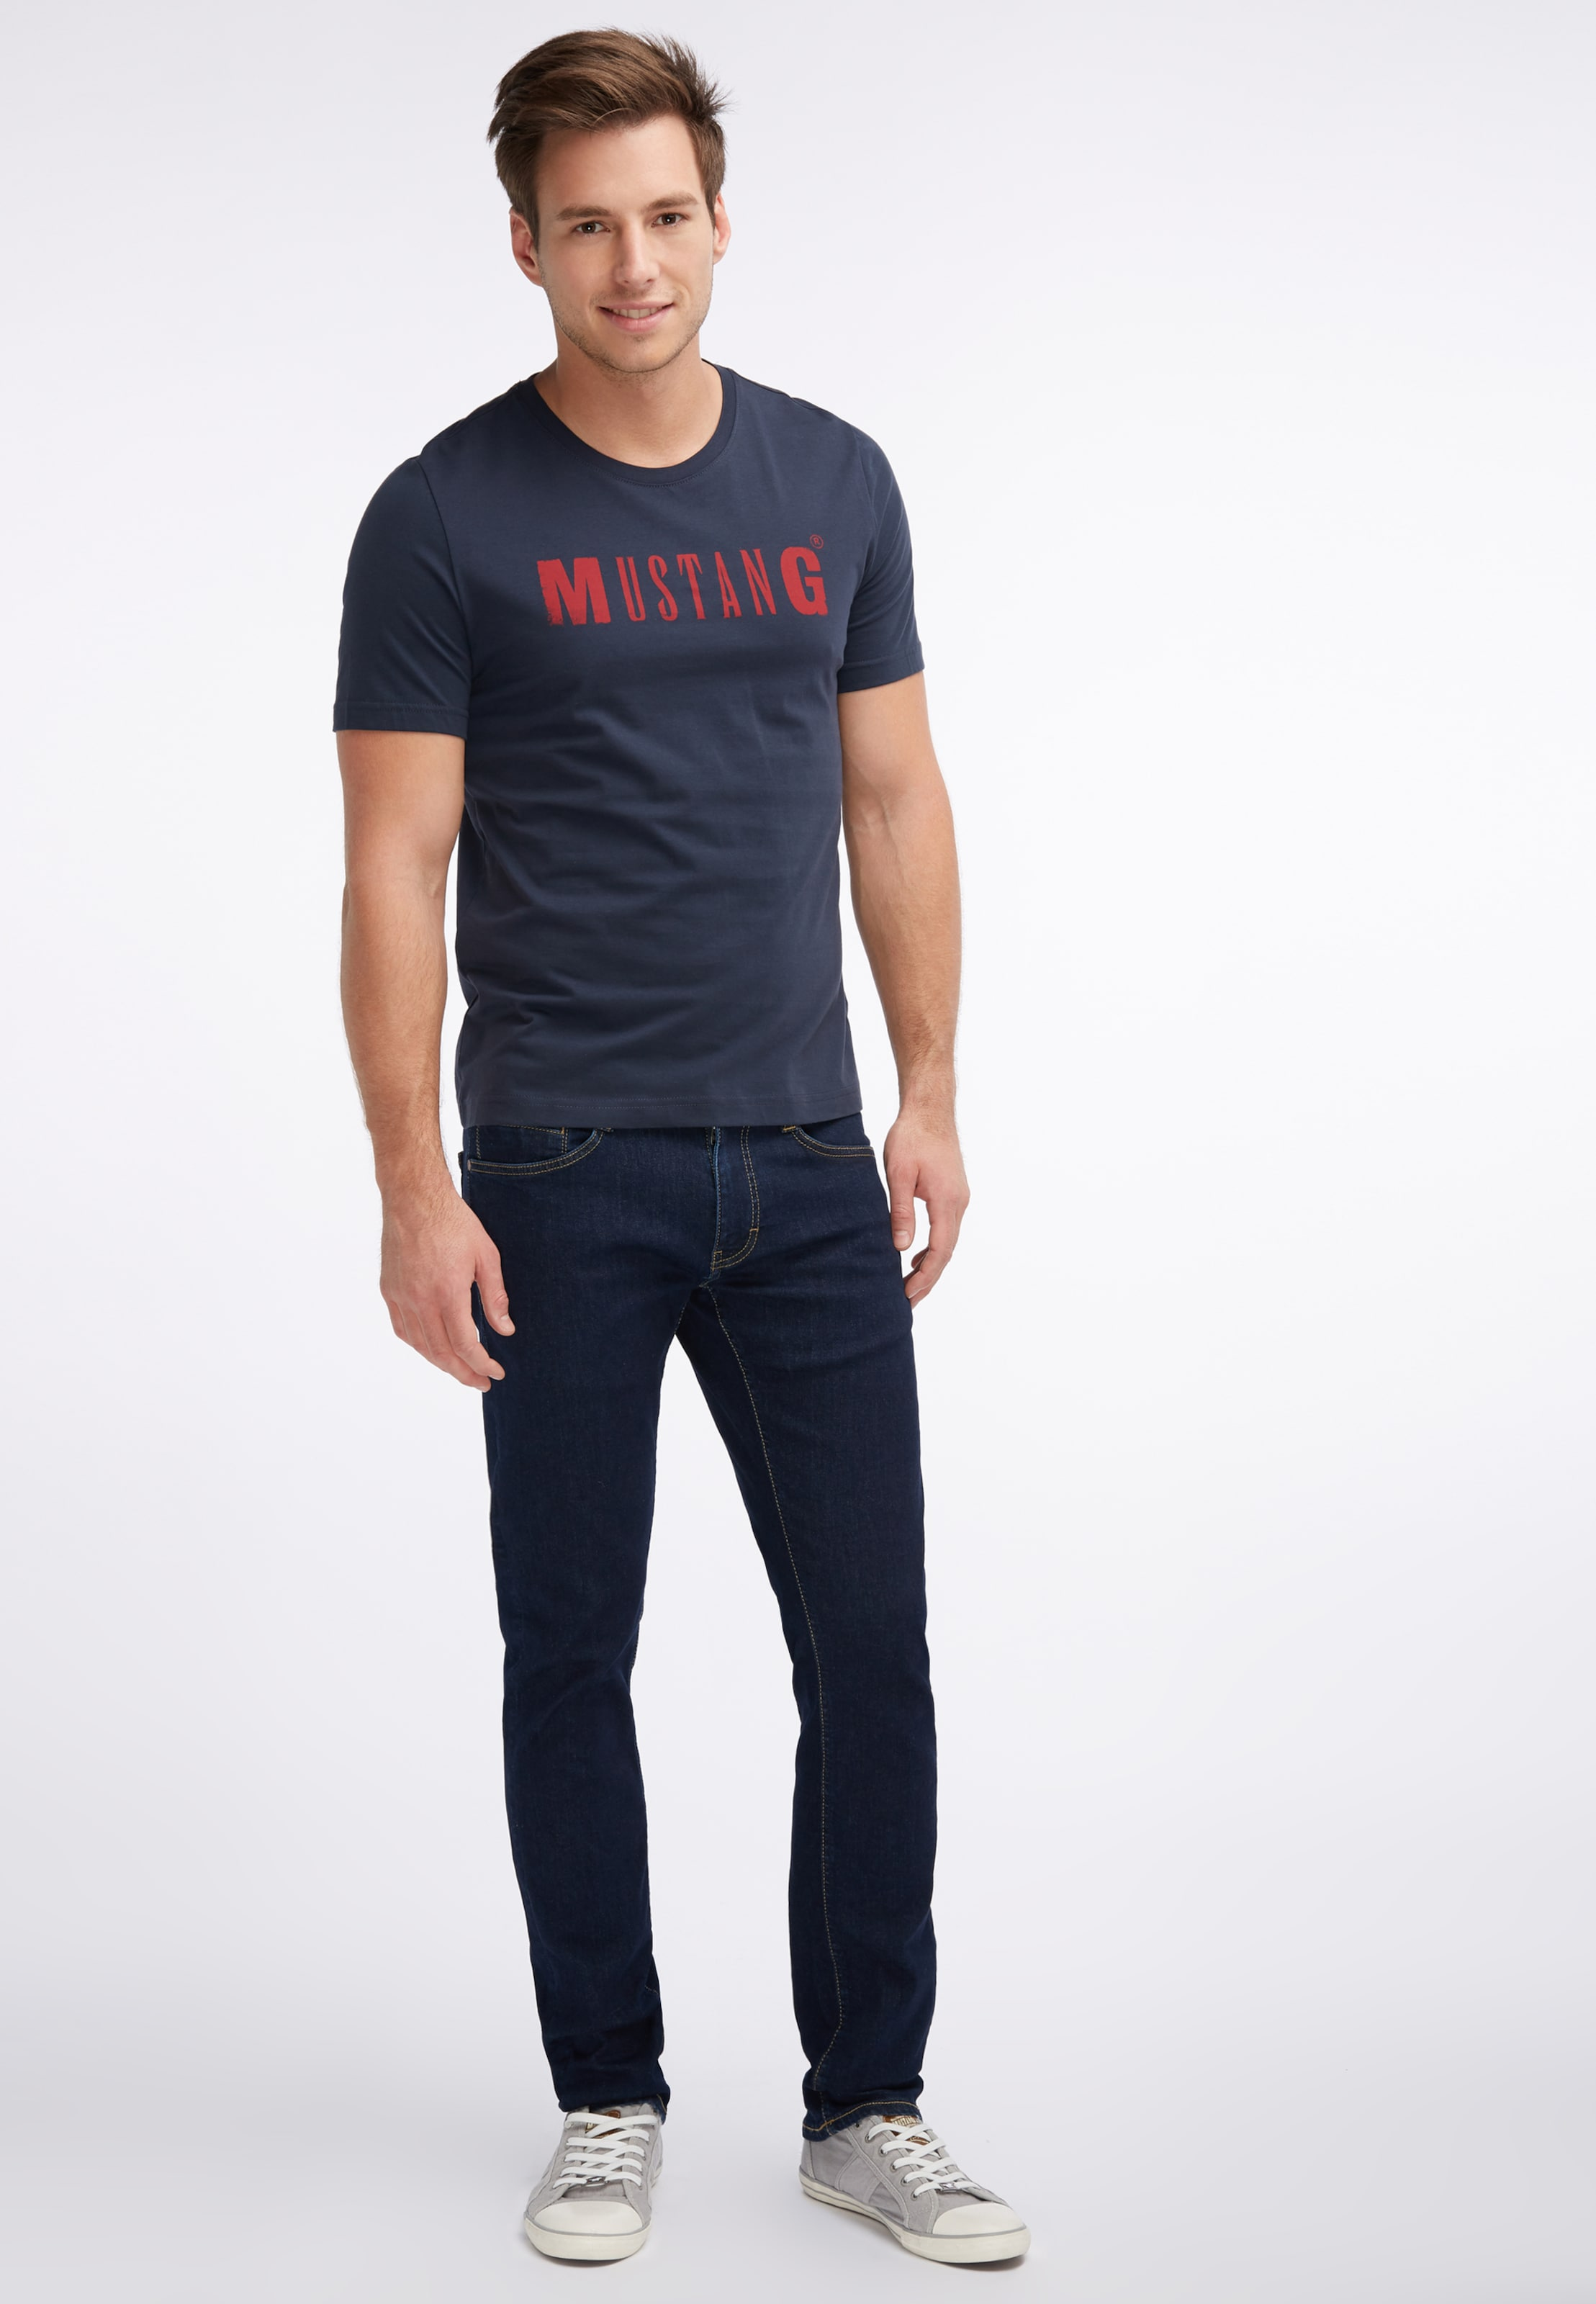 shirt NachtblauFeuerrot In shirt NachtblauFeuerrot Mustang In T T Mustang eDYIE9bWH2